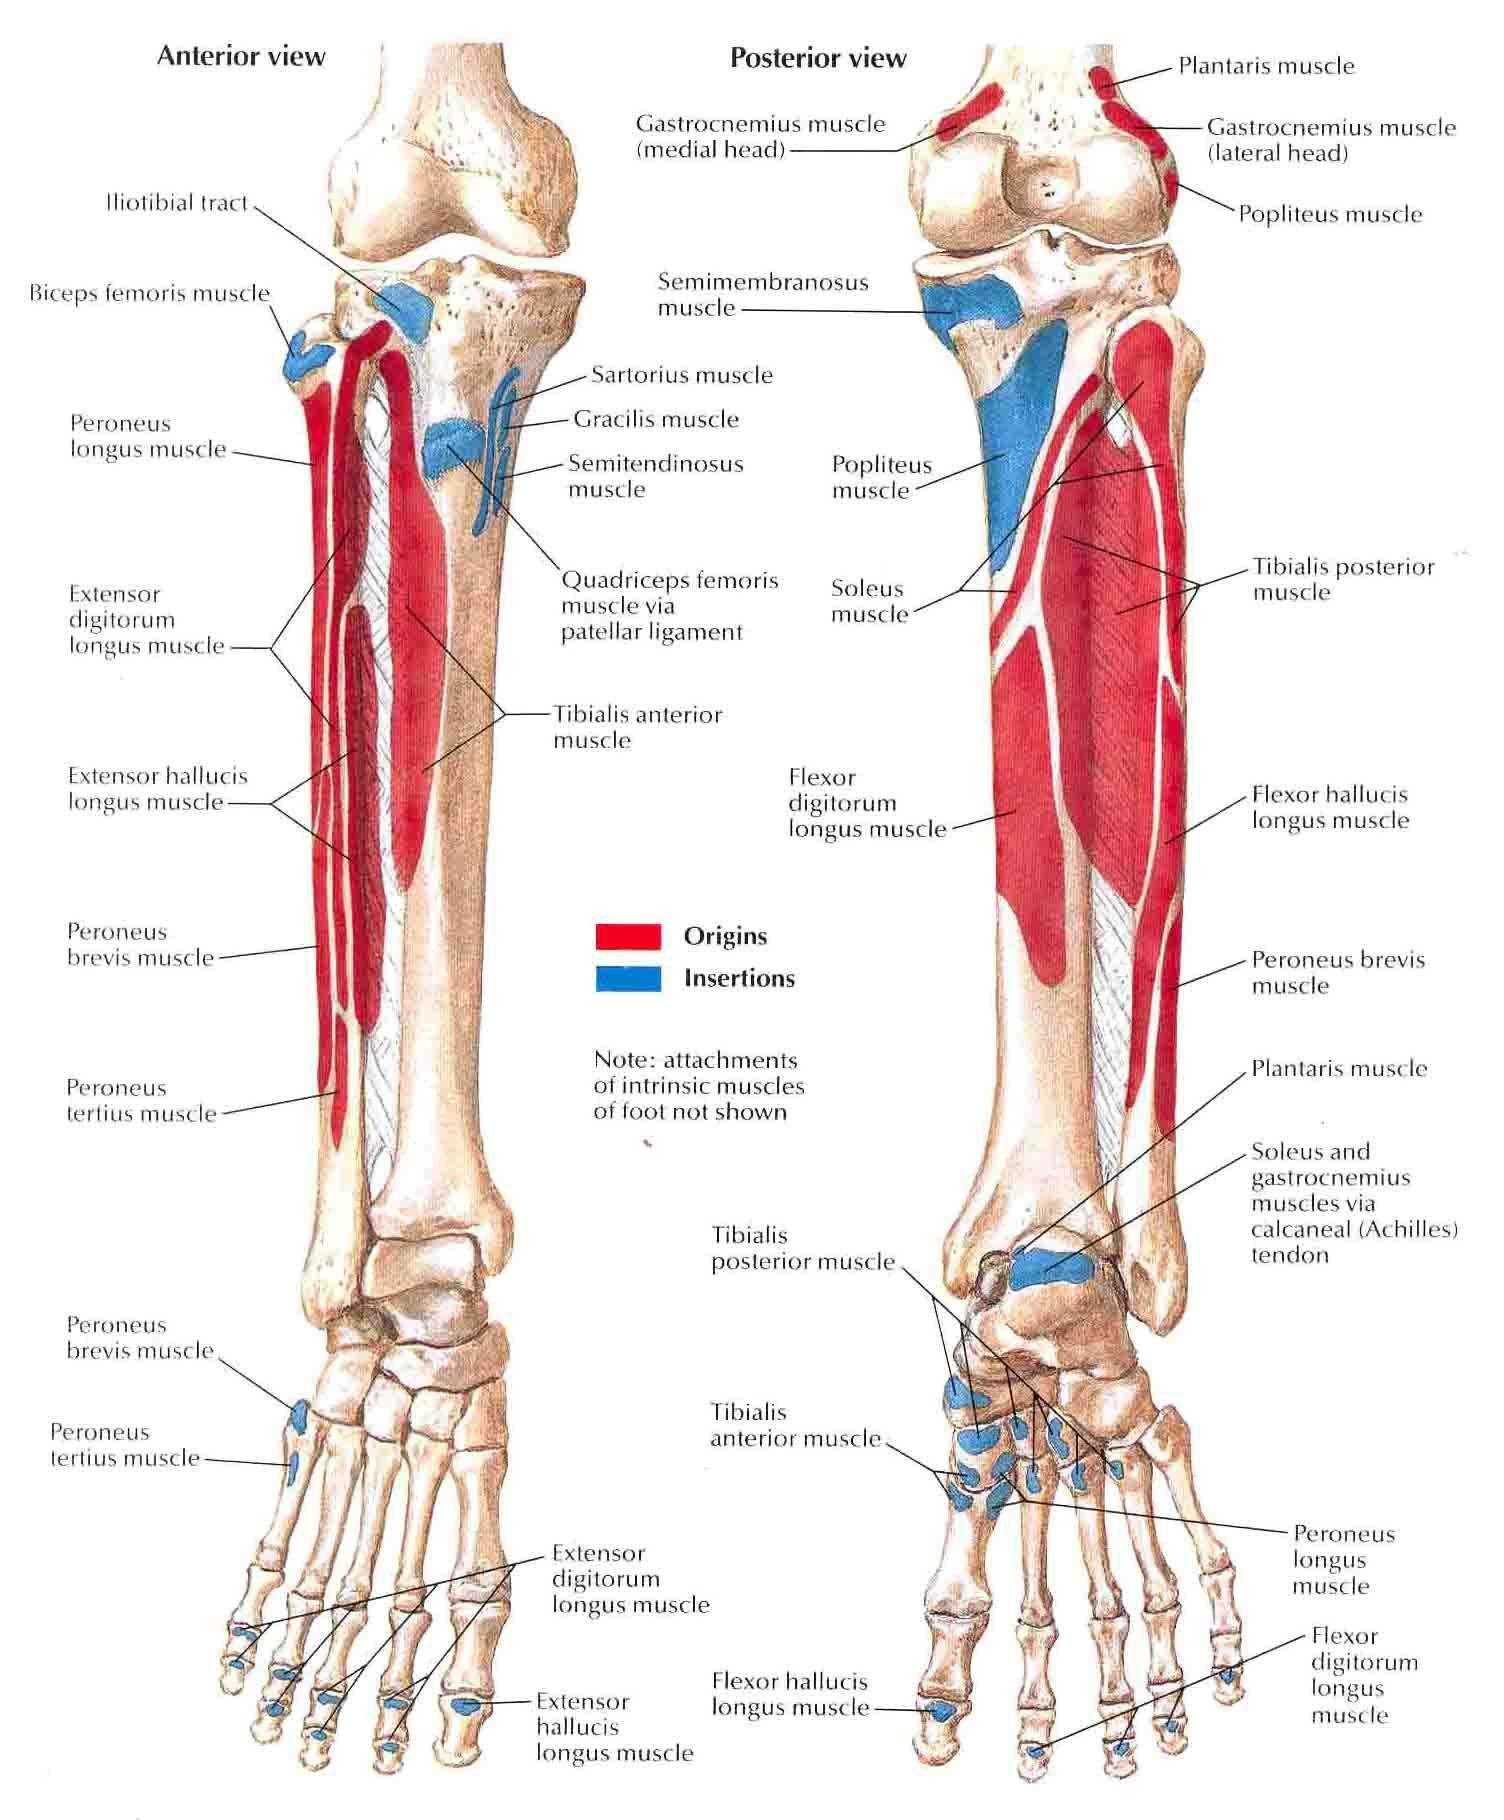 Muscles Origin And Insertion Lower Limb Muscle Origin And Insertion ...